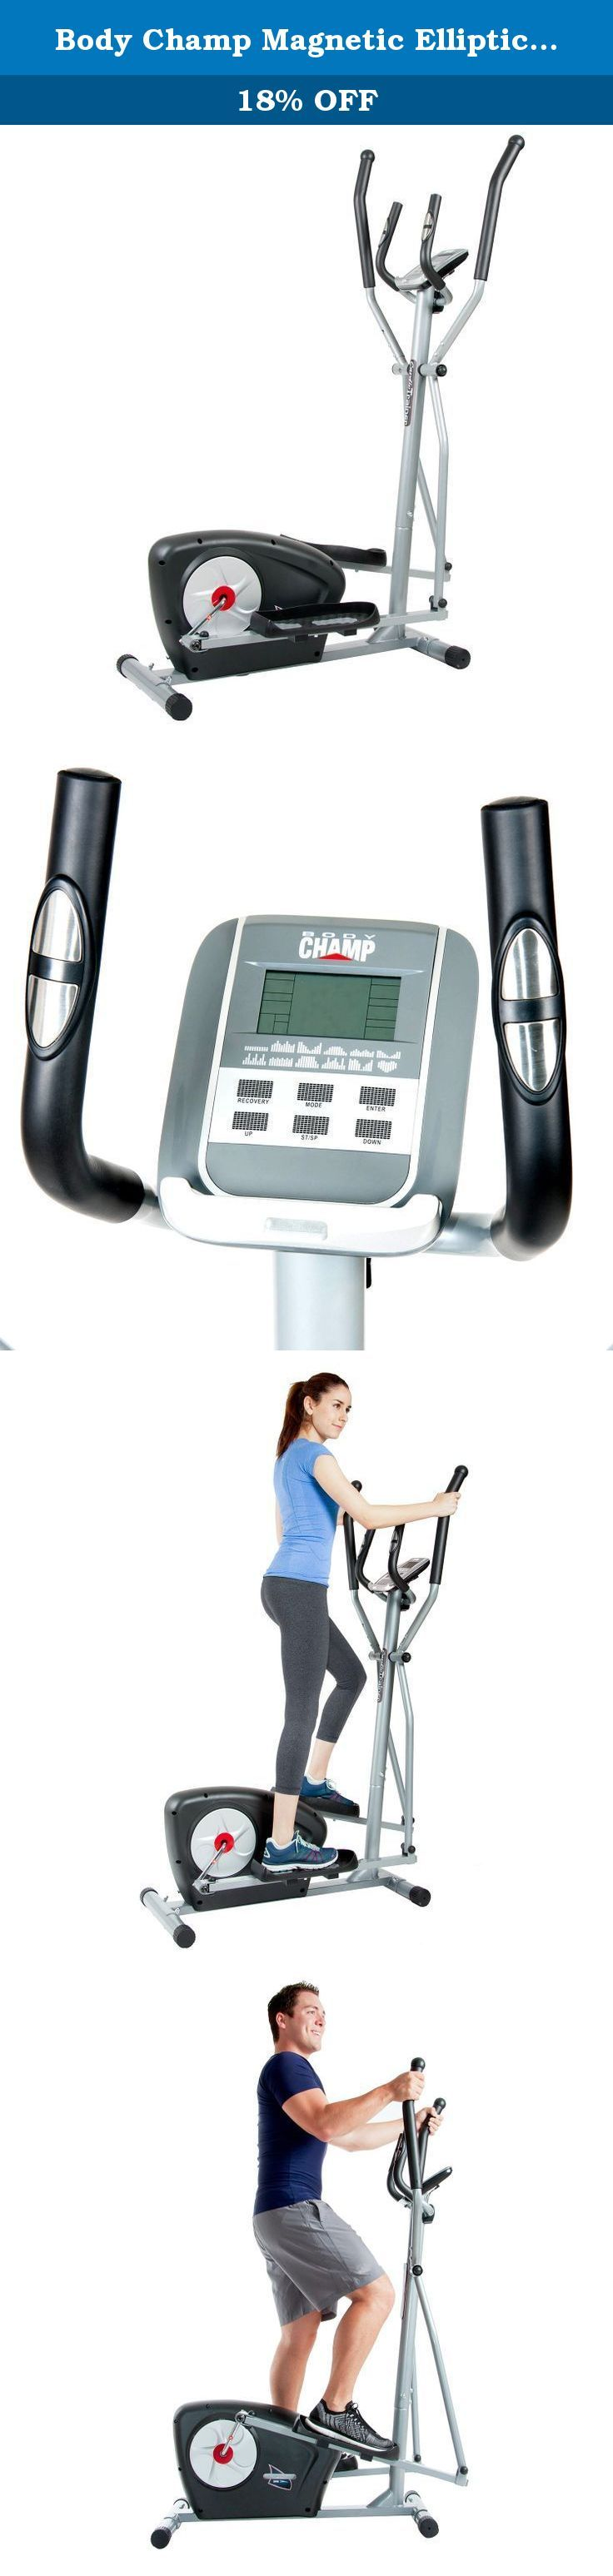 Body Champ Magnetic Elliptical Trainer, black/Silver. Take your and fitness and wellness to the next level with this patented Body Champ magnetic Elliptical Trainer. With unparalleled features and capabilities for its price and value, you can experience fully customizable workouts every time in the convenience and comfort of home. This Body Champ magnetic Elliptical Trainer utilizes motor-driven tension control and features a resistance system built with quality components that offer...